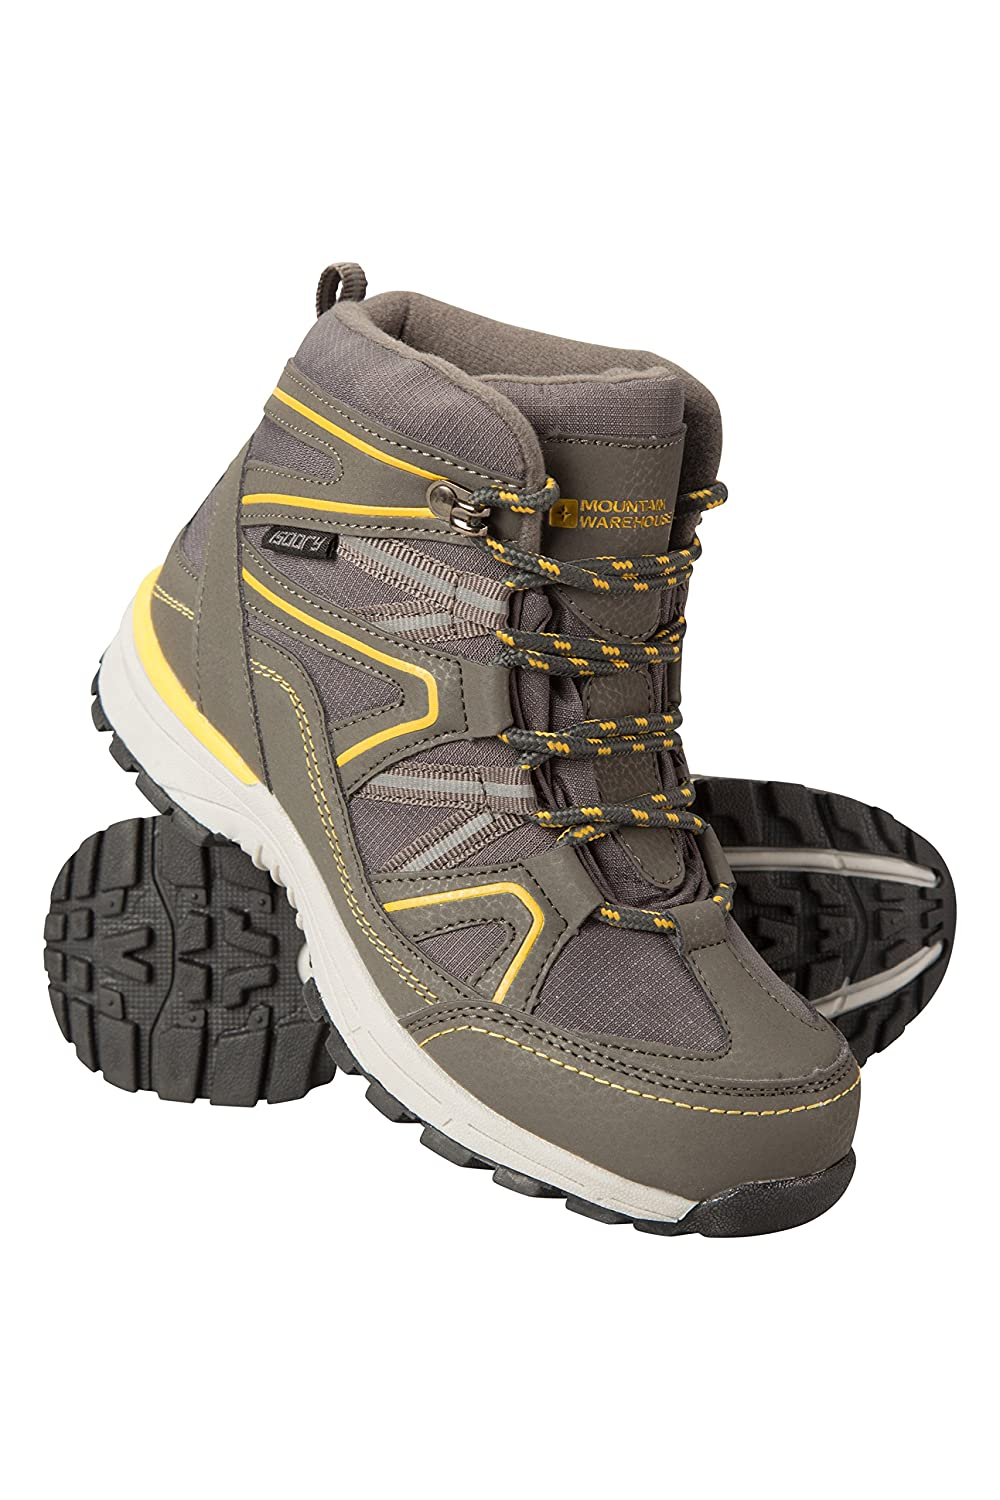 Mountain Warehouse Stride Wasserdichte Kinder Stiefel- Perfekt für Winter